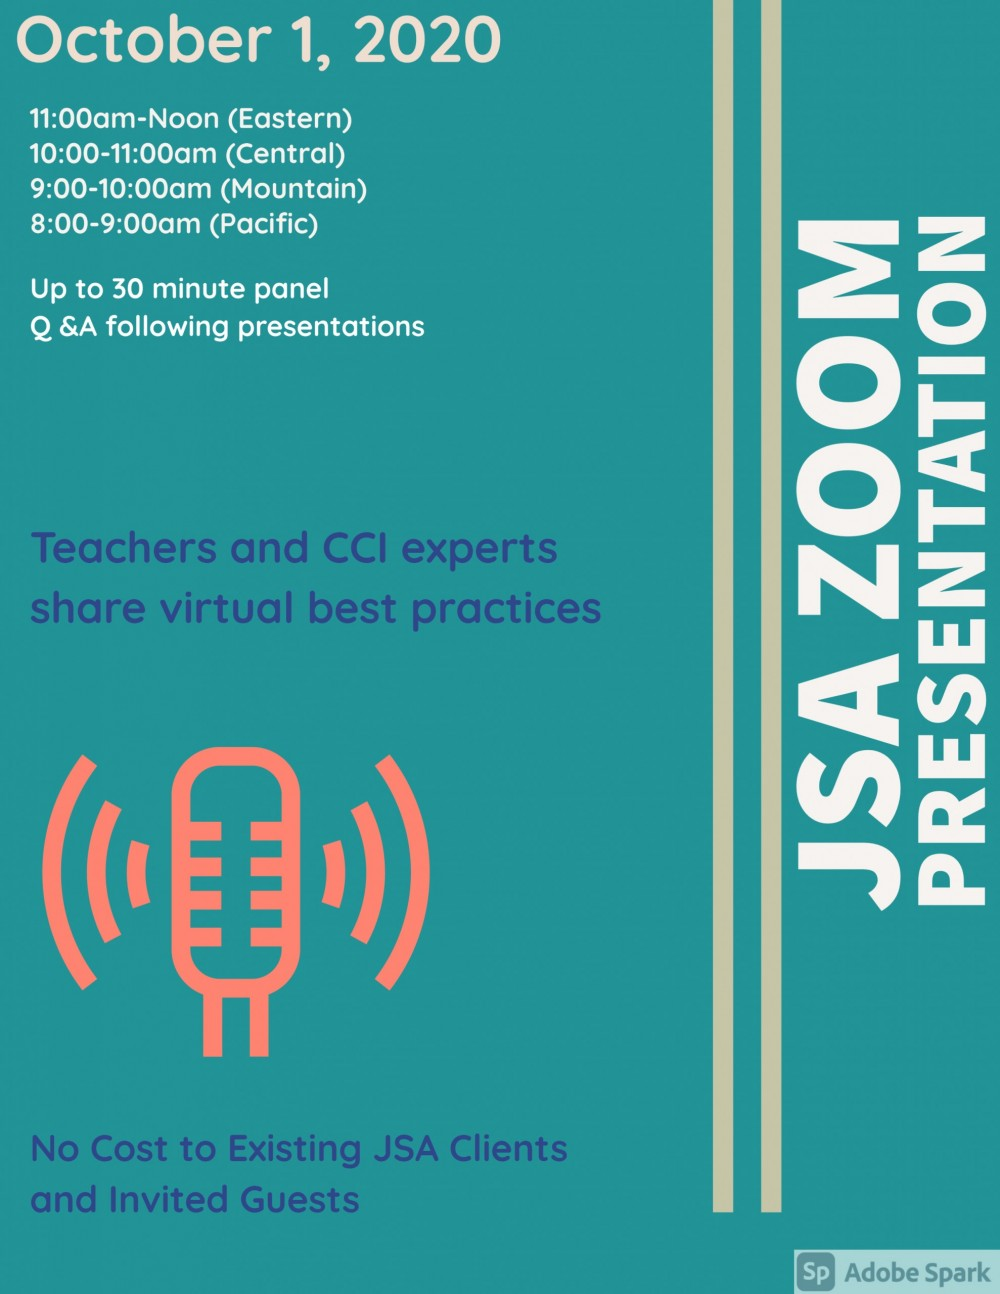 Virtual Best Practices for CCI